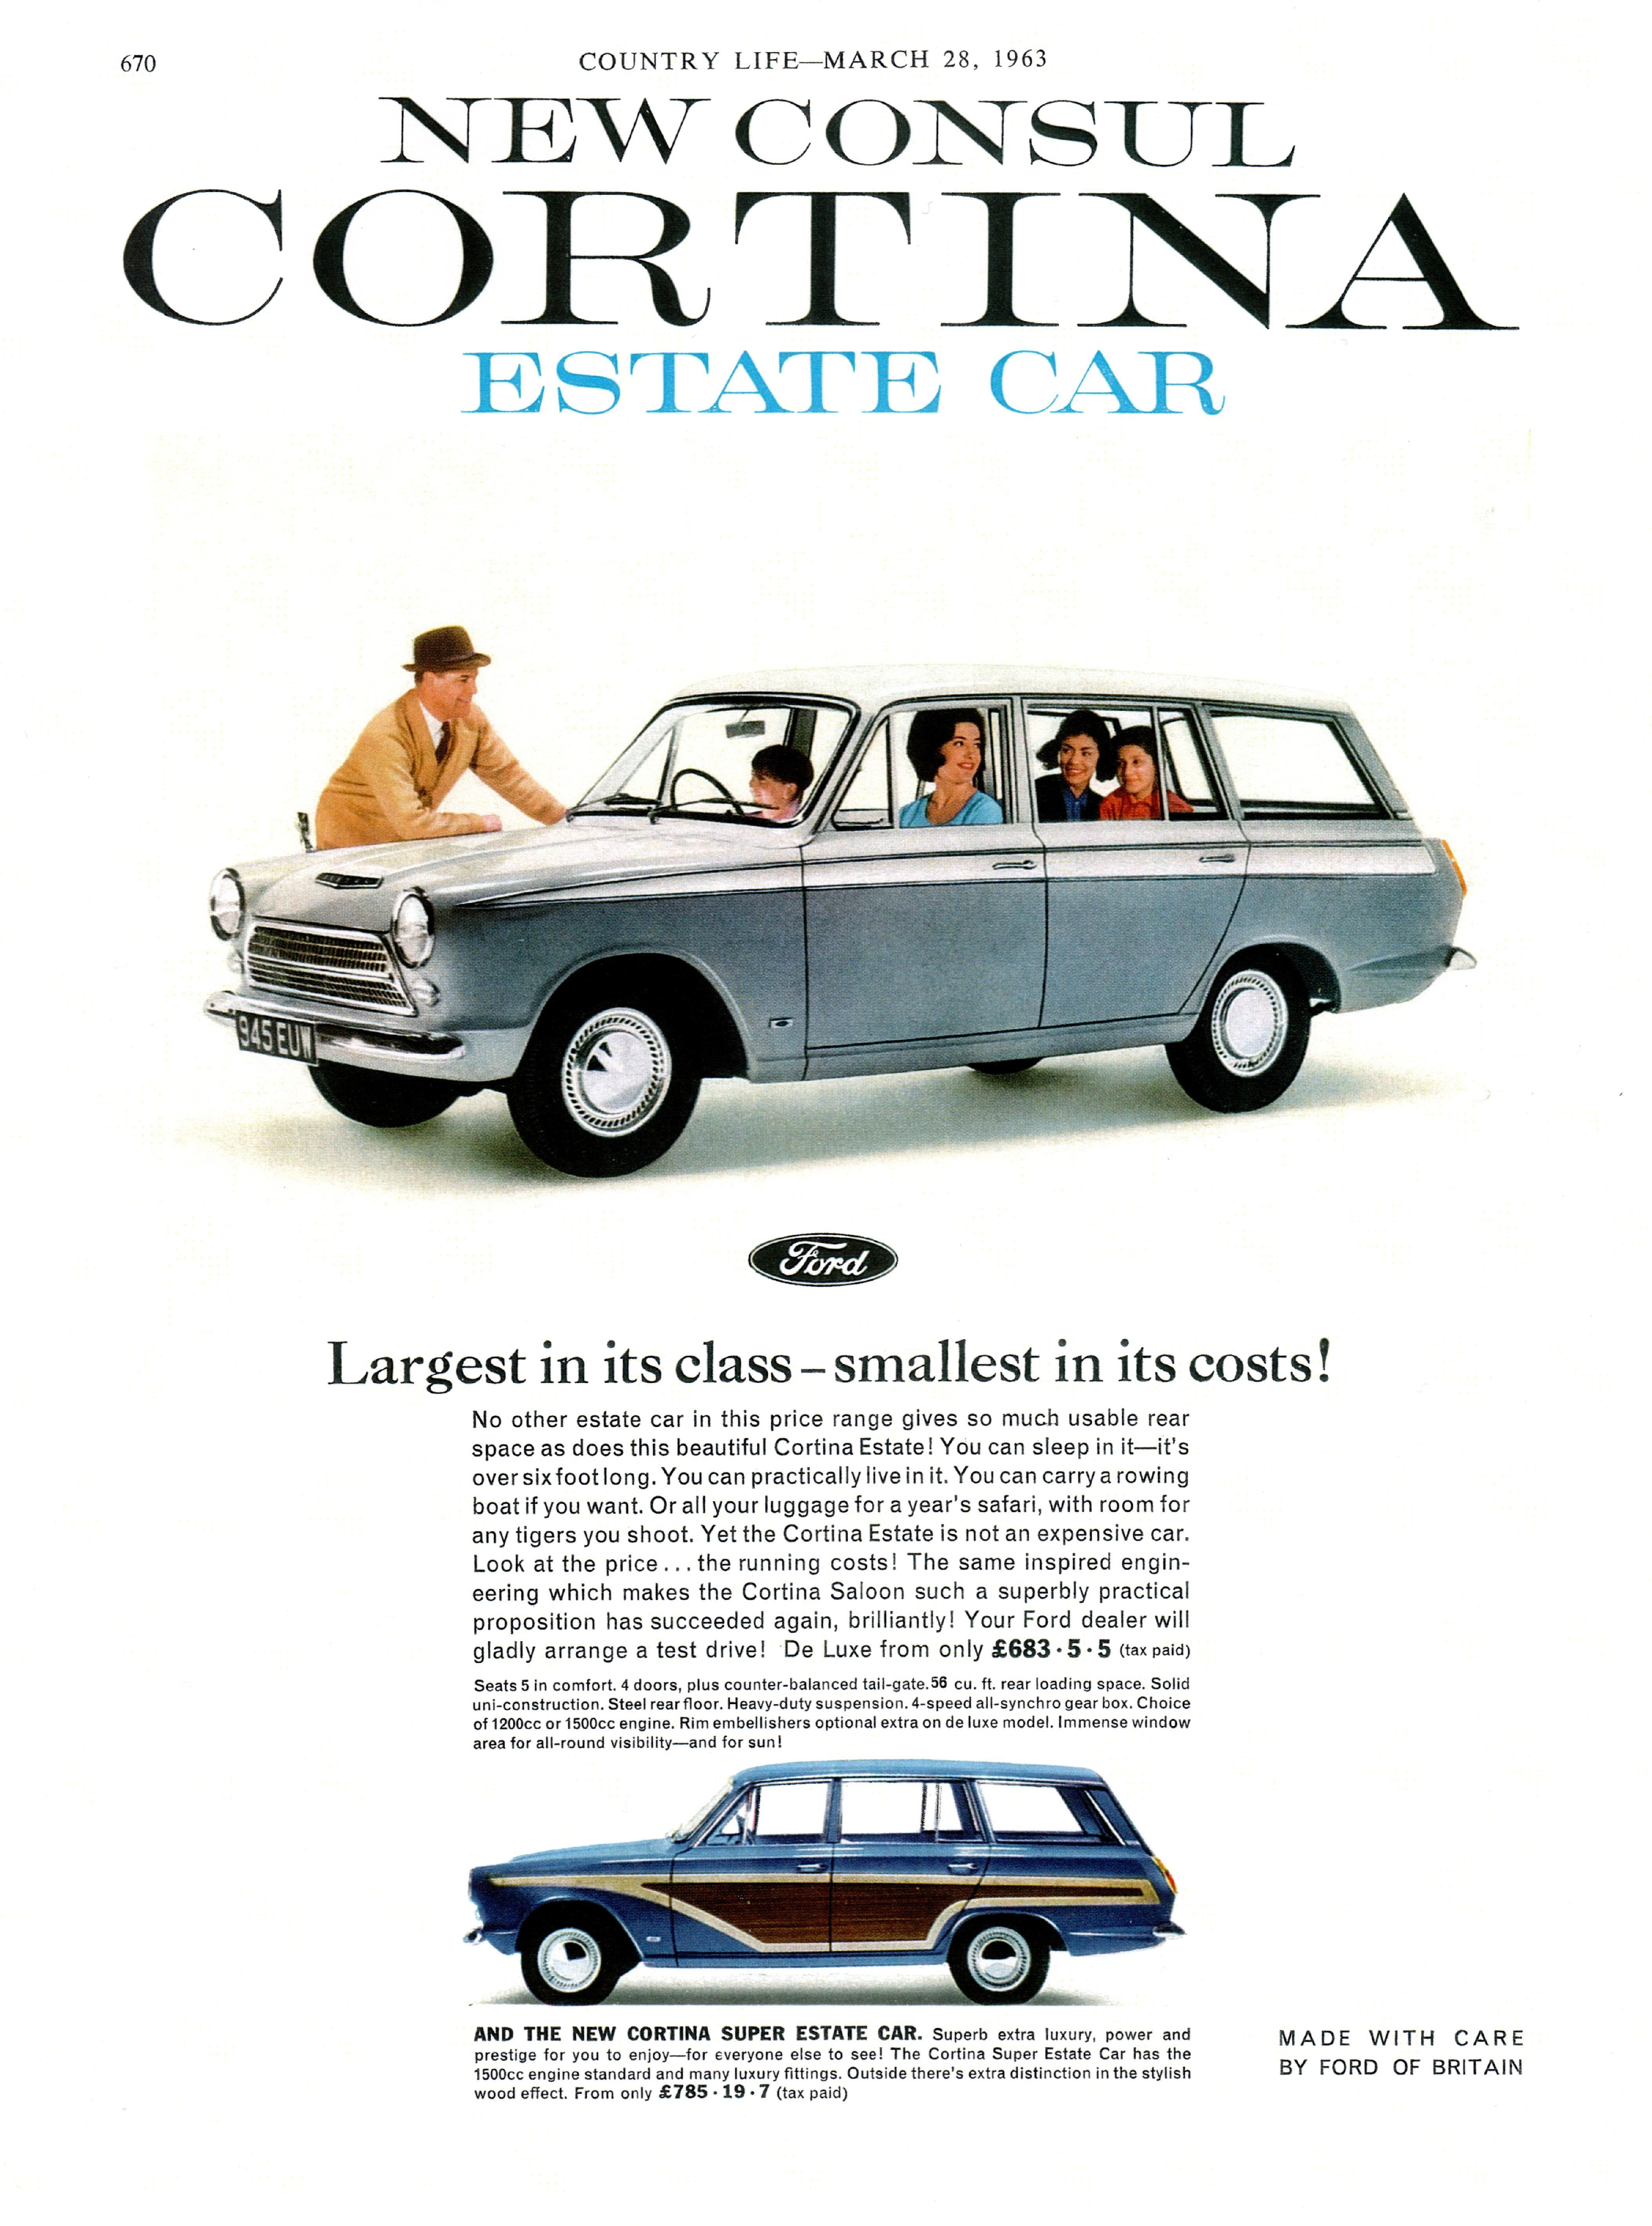 The 1963 Ford Cortina Estate car with the fake wooden panels were particularly unsuccessful and withdrawn  sc 1 st  Pinterest & The 1963 Ford Cortina Estate car with the fake wooden panels were ... markmcfarlin.com